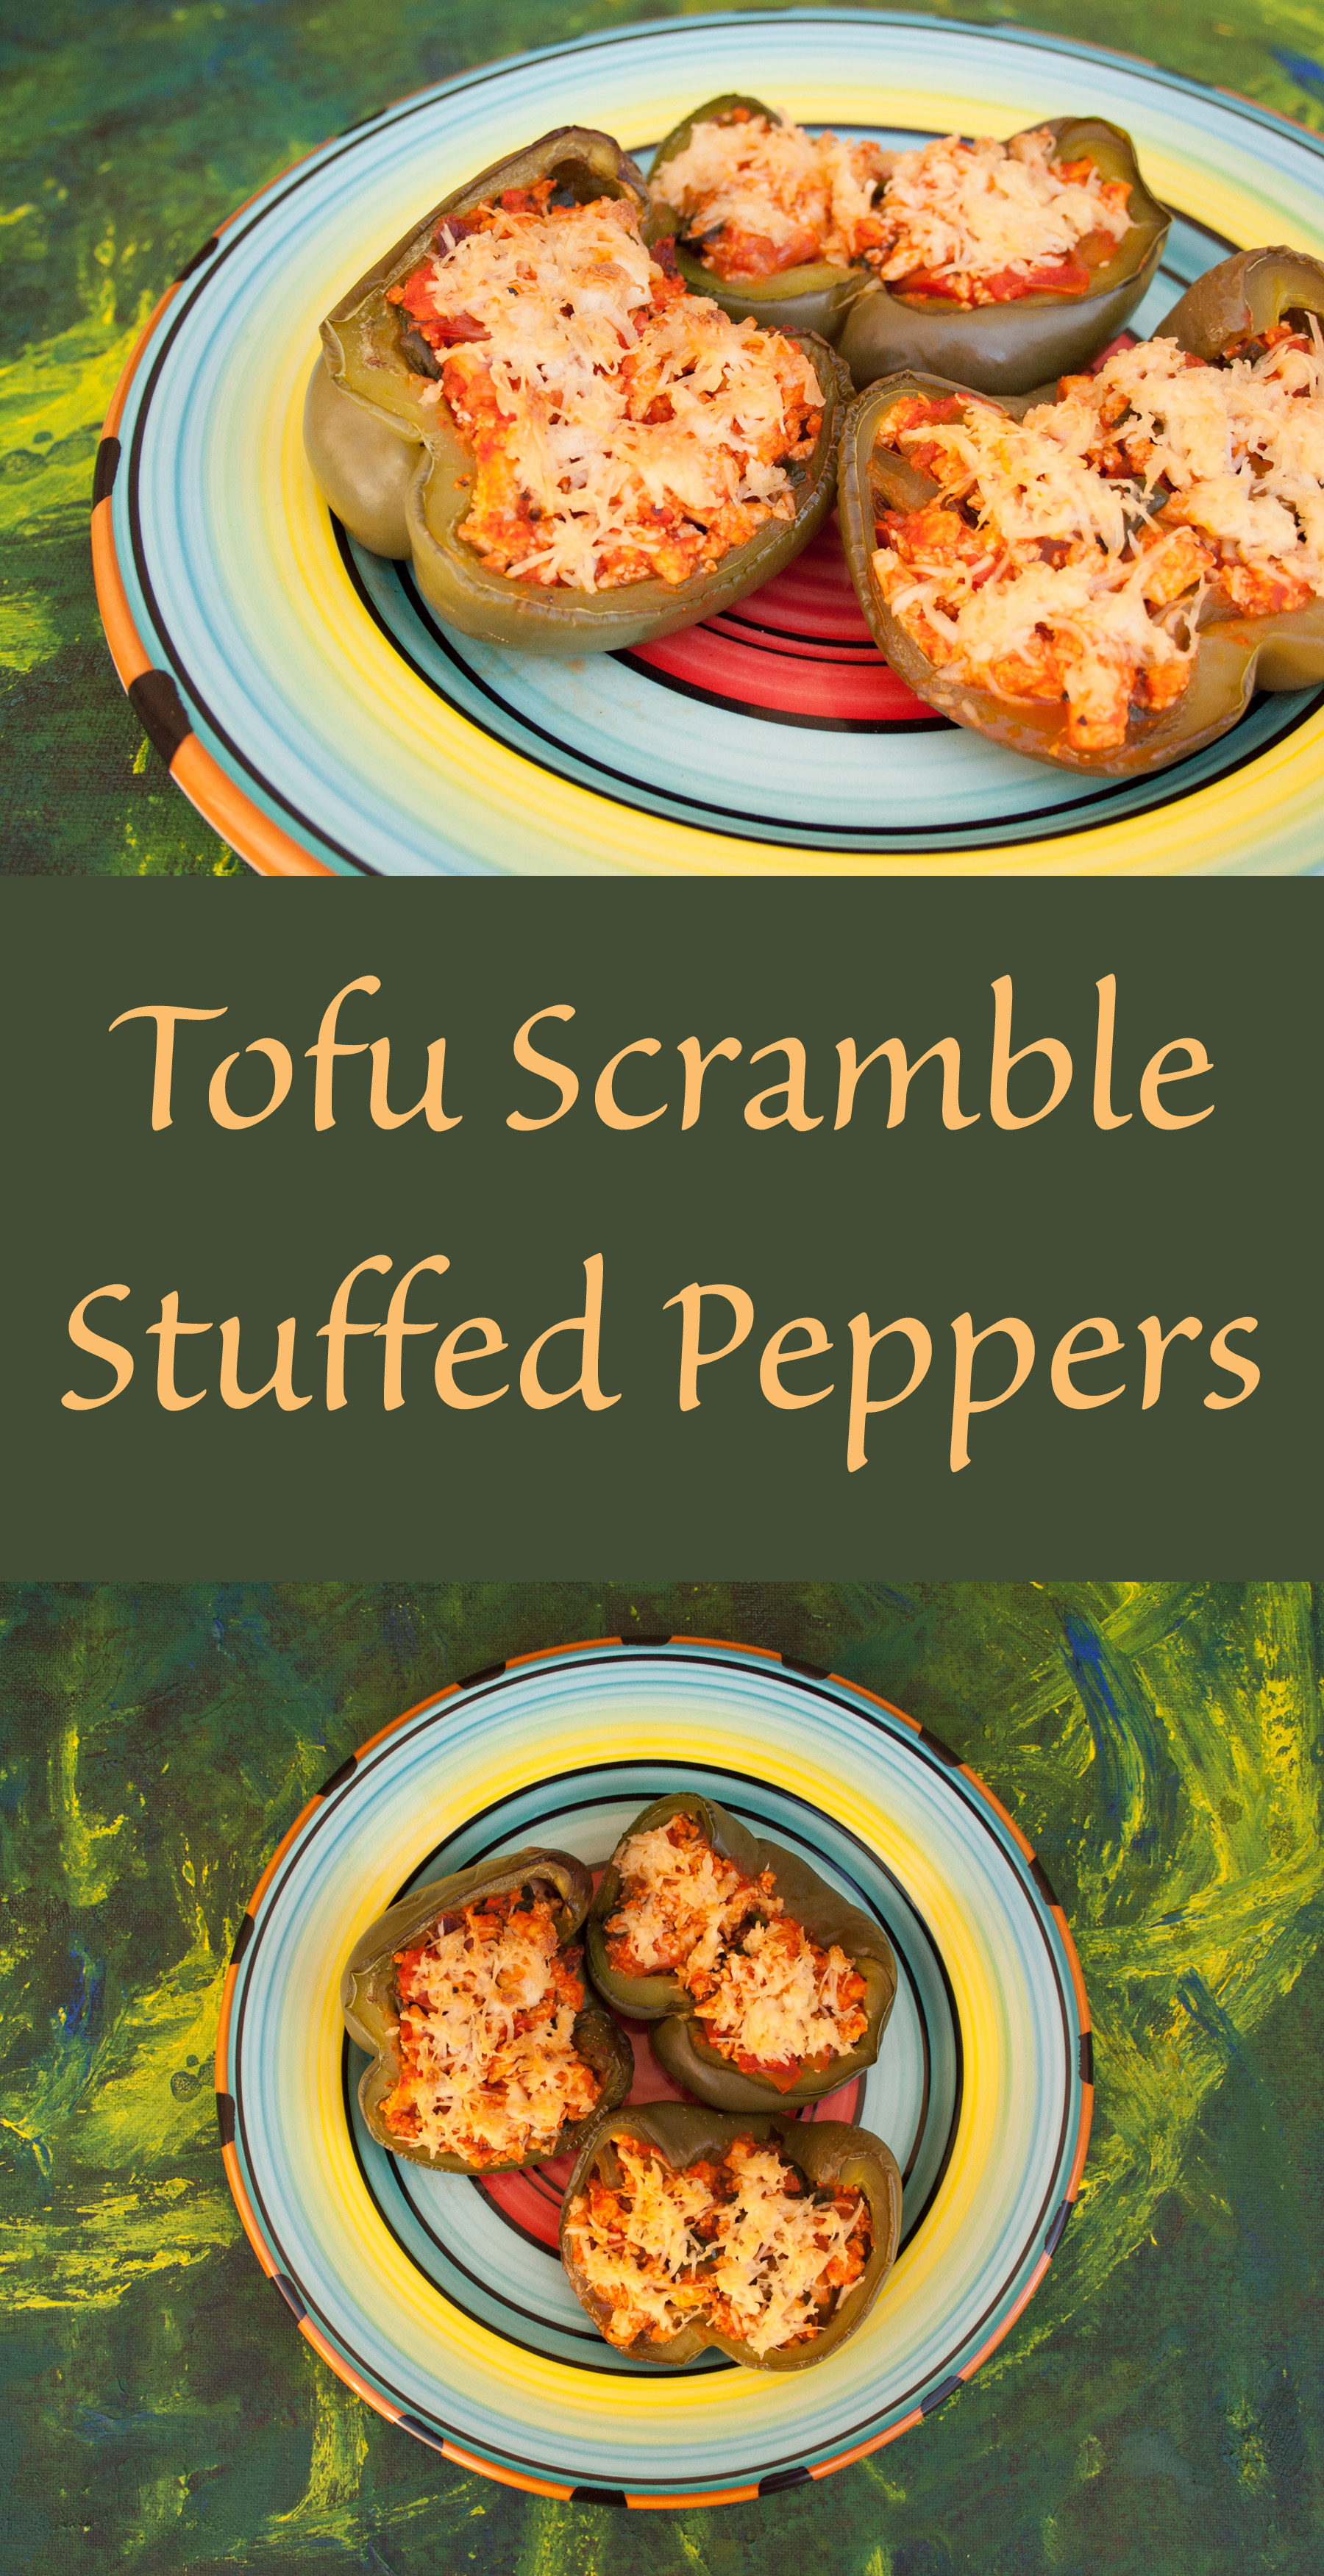 Tofu Scramble Stuffed Peppers collage photo with text.